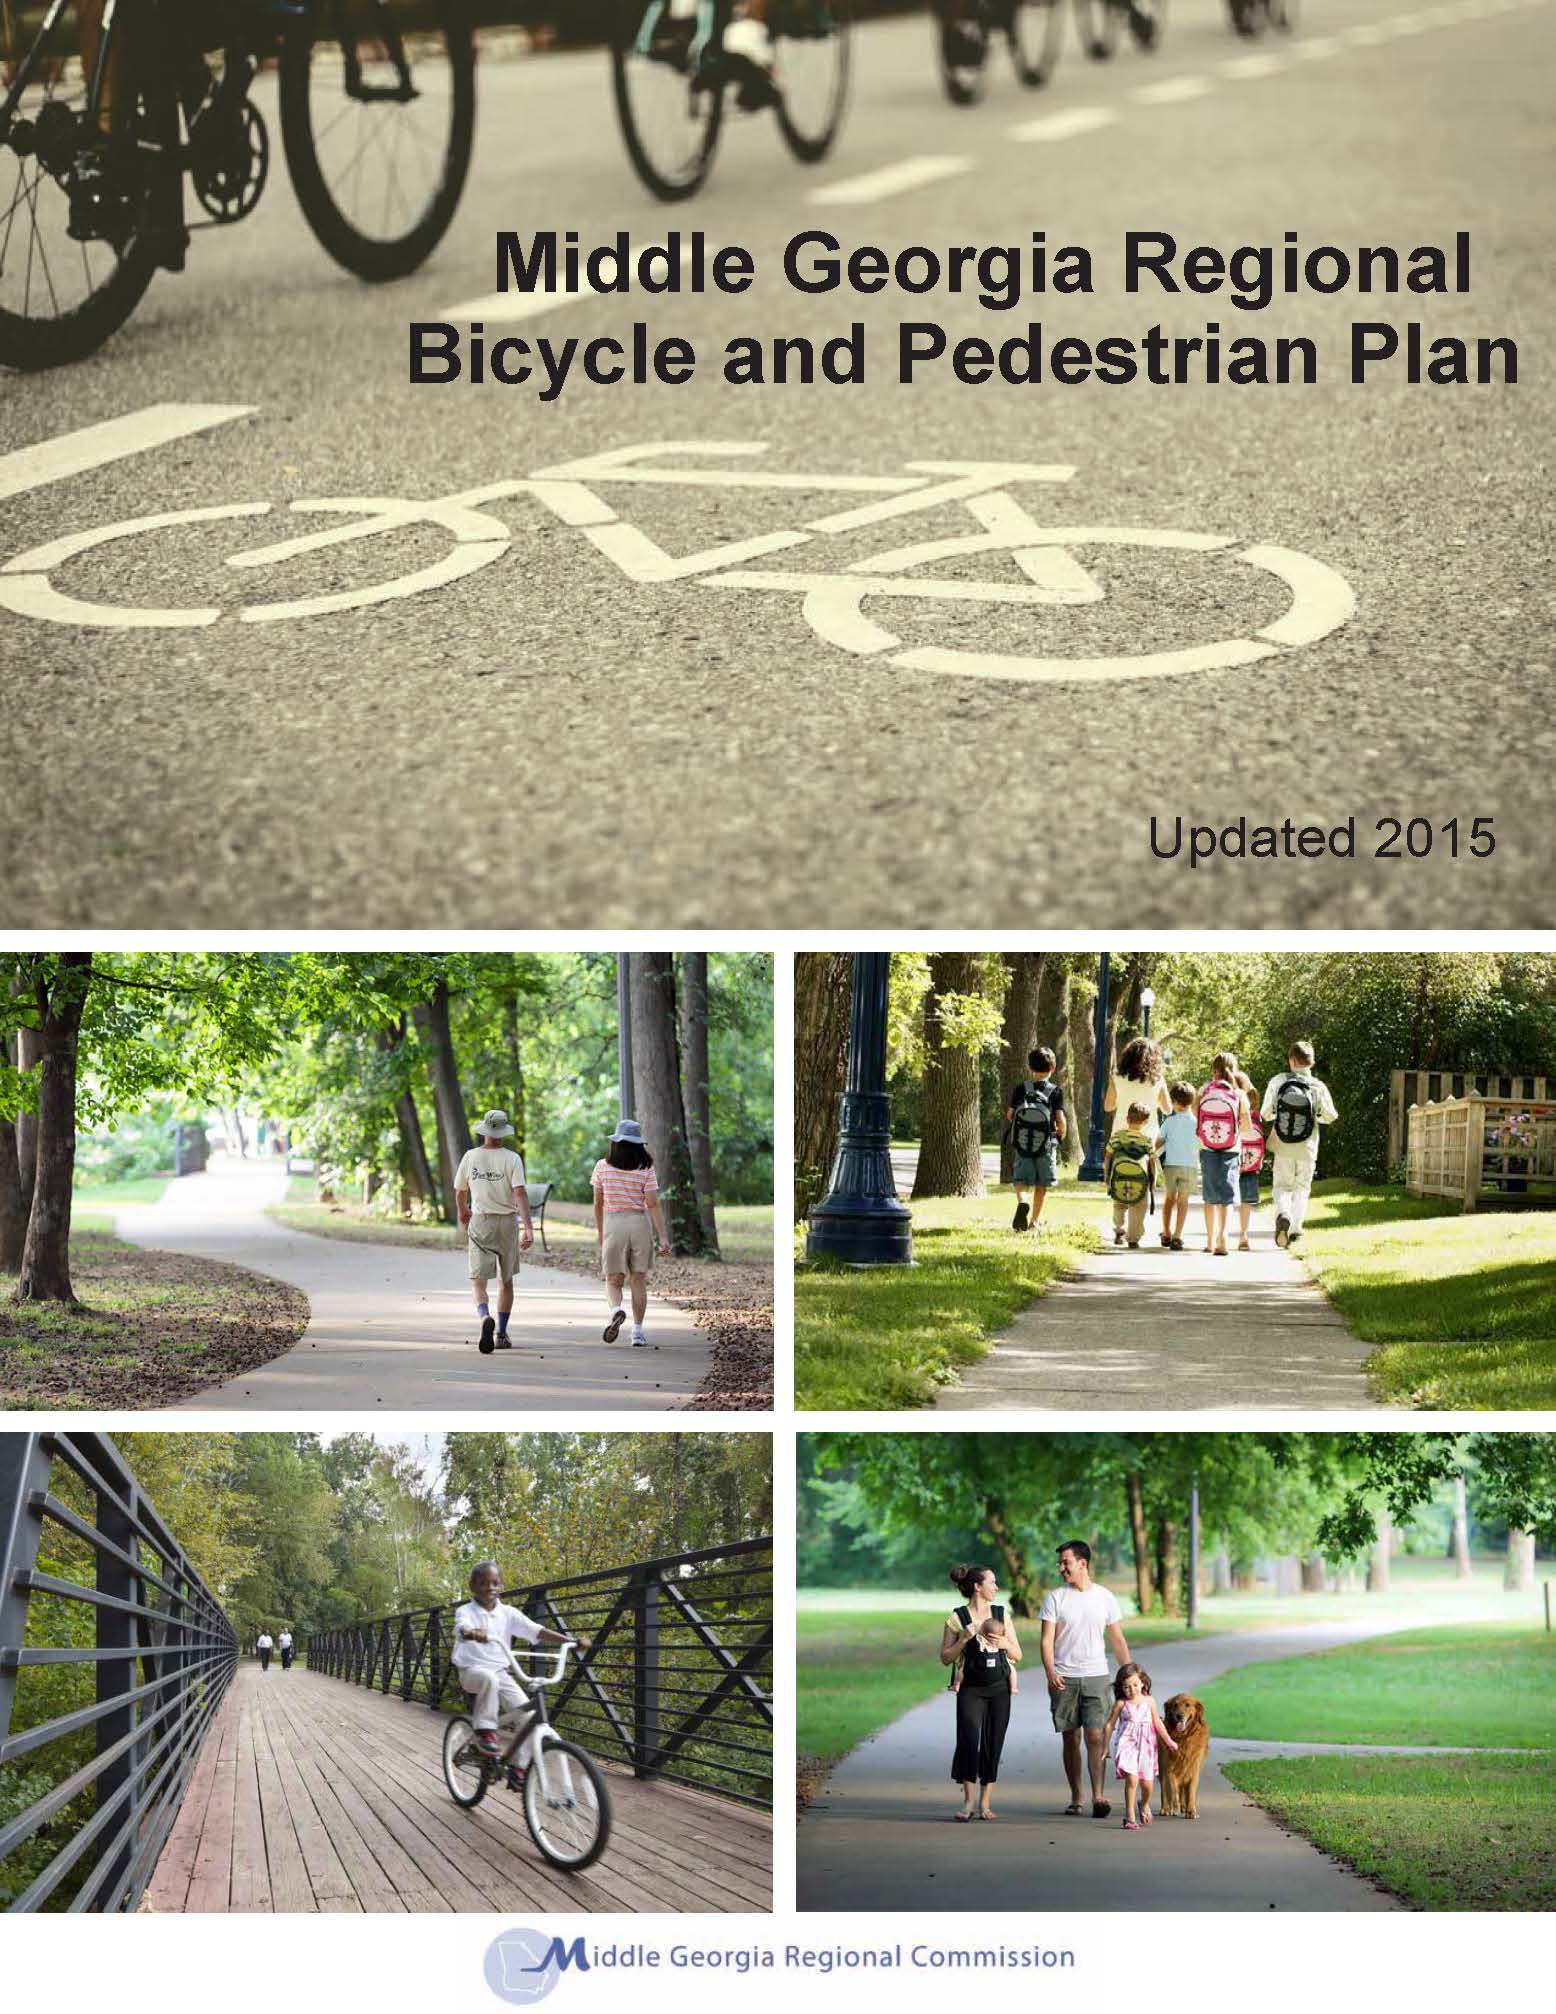 Update to the Middle Georgia Regional Bicycle and Pedestrian Plan